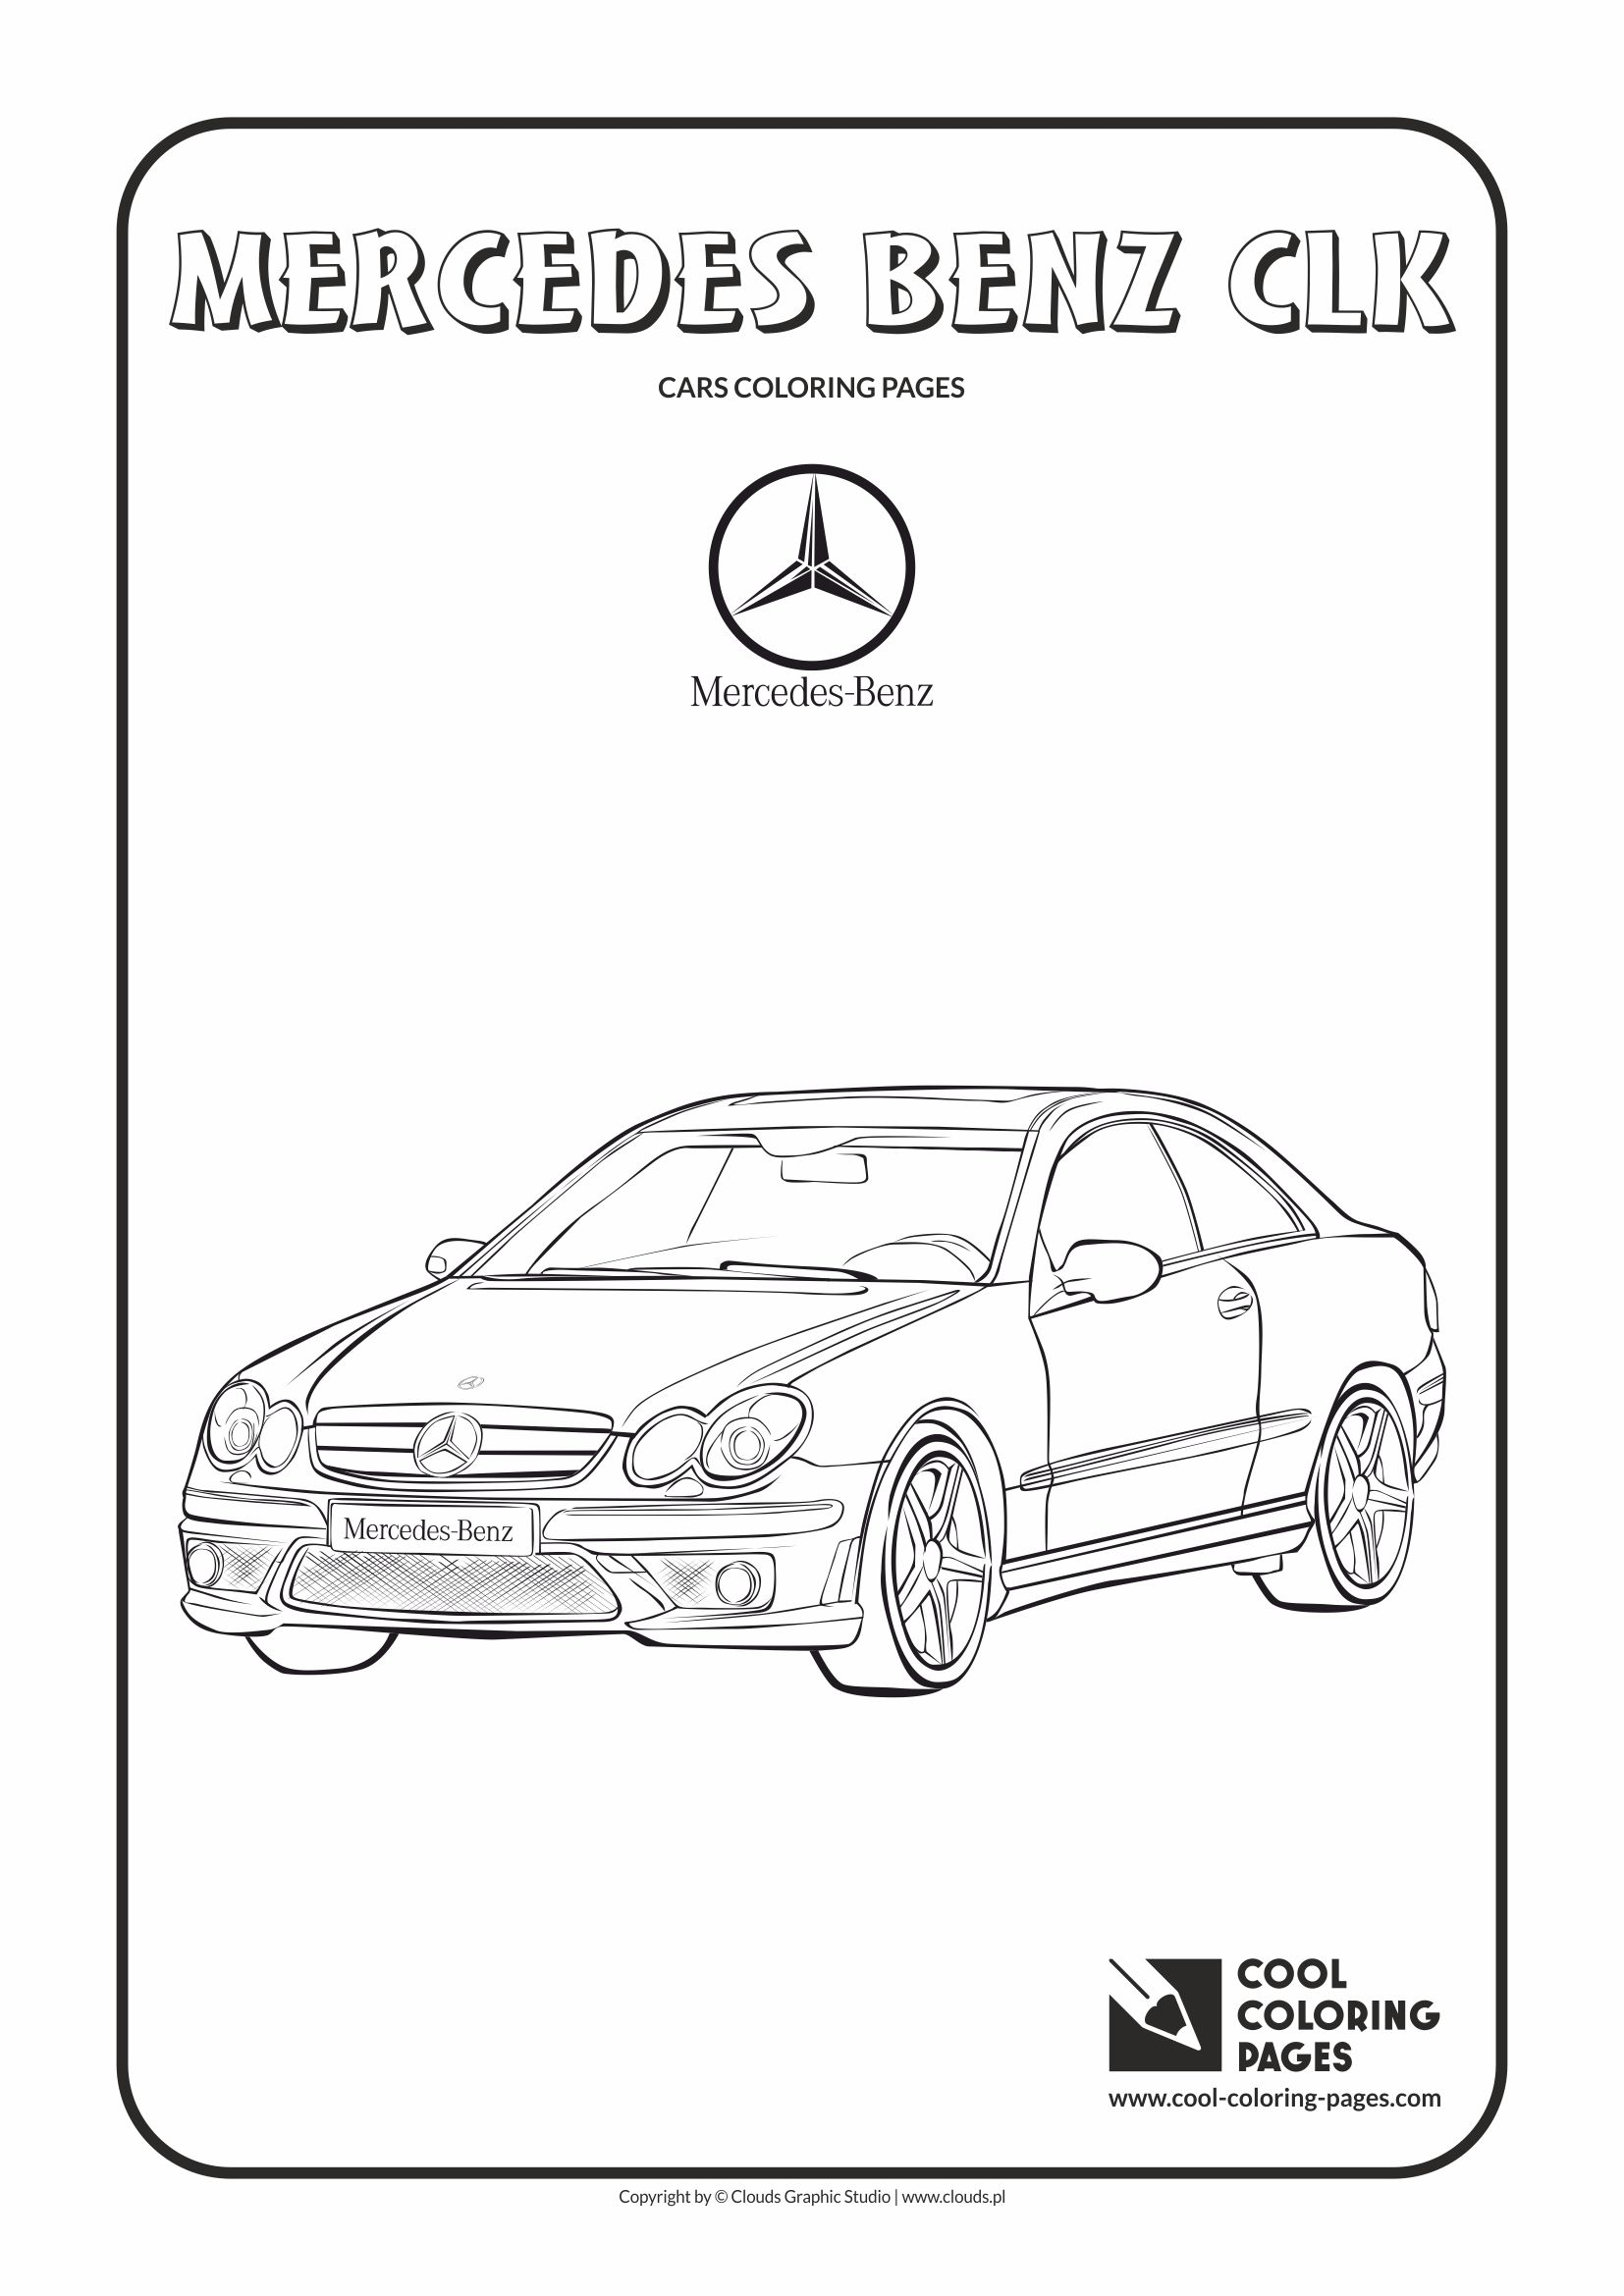 Cool Coloring Pages - Vehicles / Mercedes Benz CLK / Coloring page with Mercedes Benz CLK